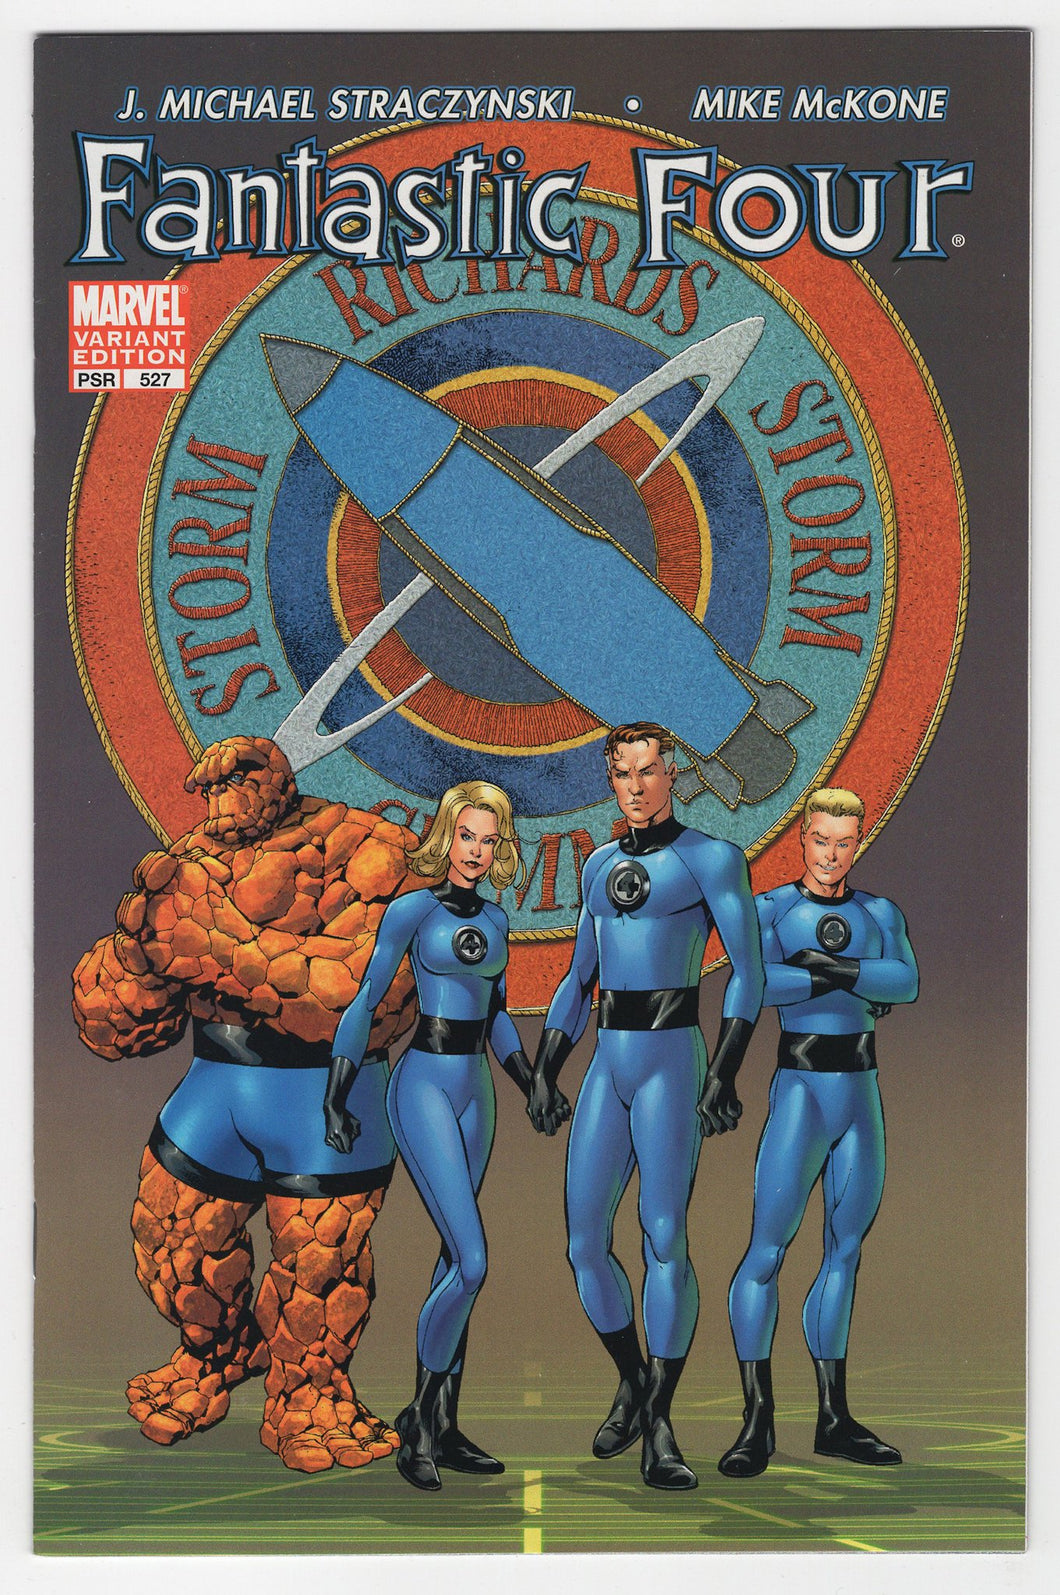 Fantastic Four #527 Variant Cover Front